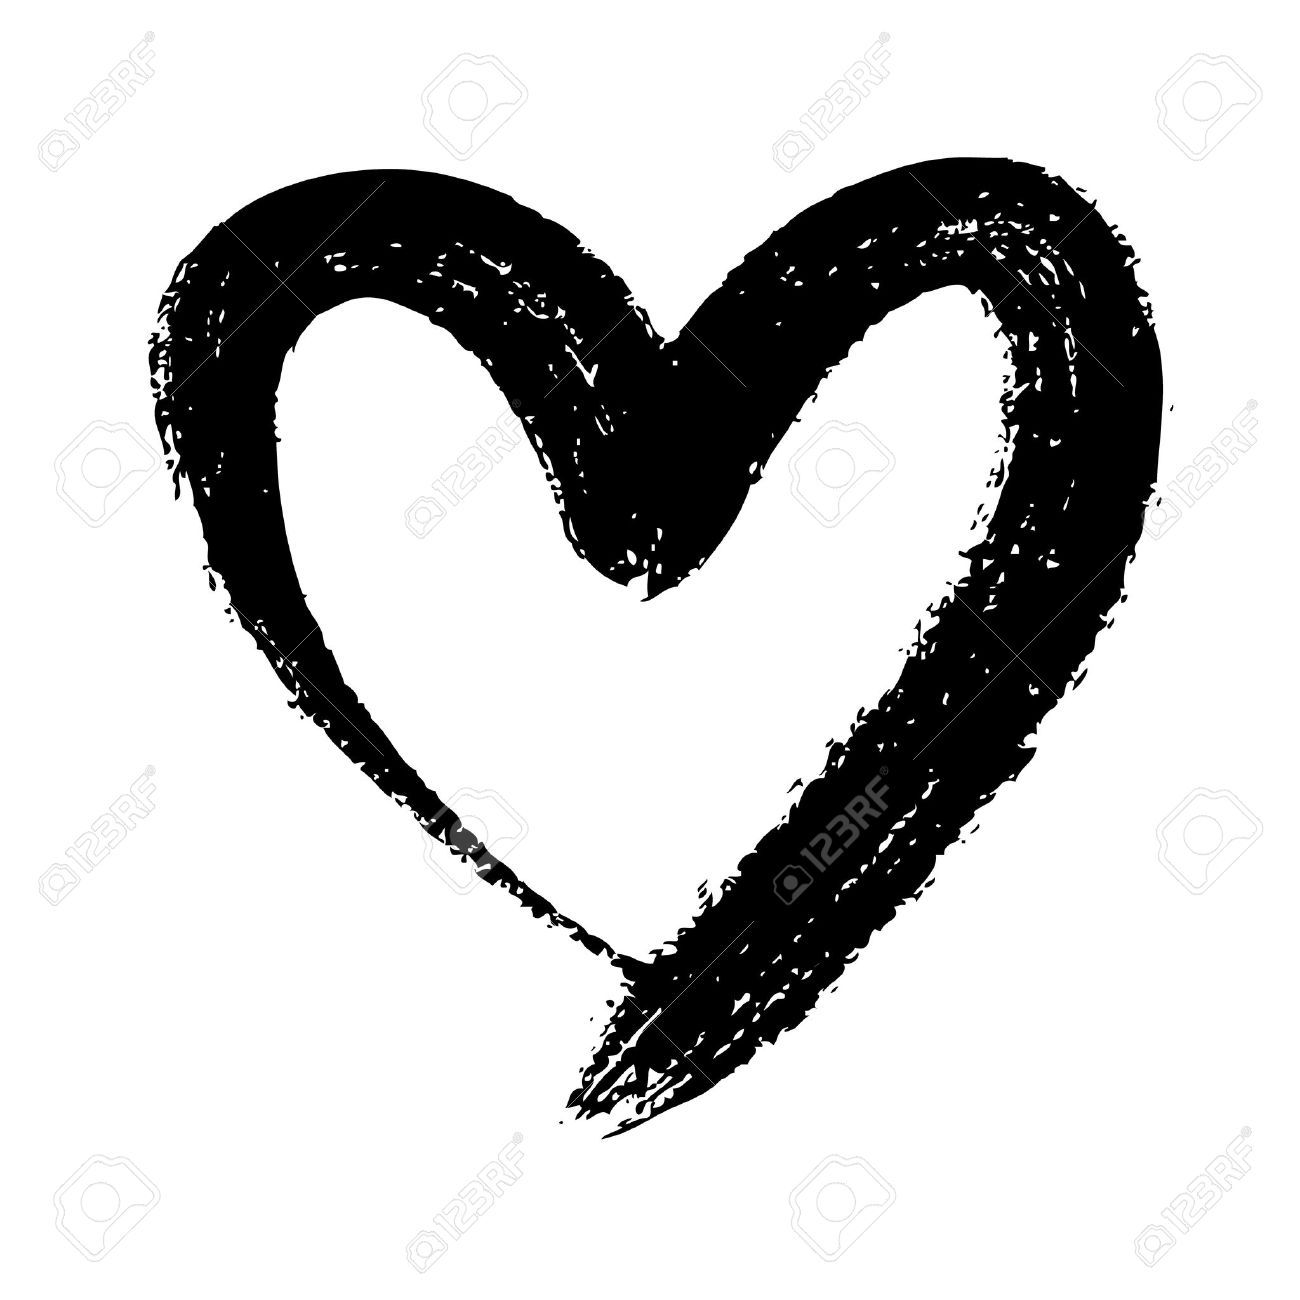 medium resolution of doodle hand drawn heart shaped on white background royalty free